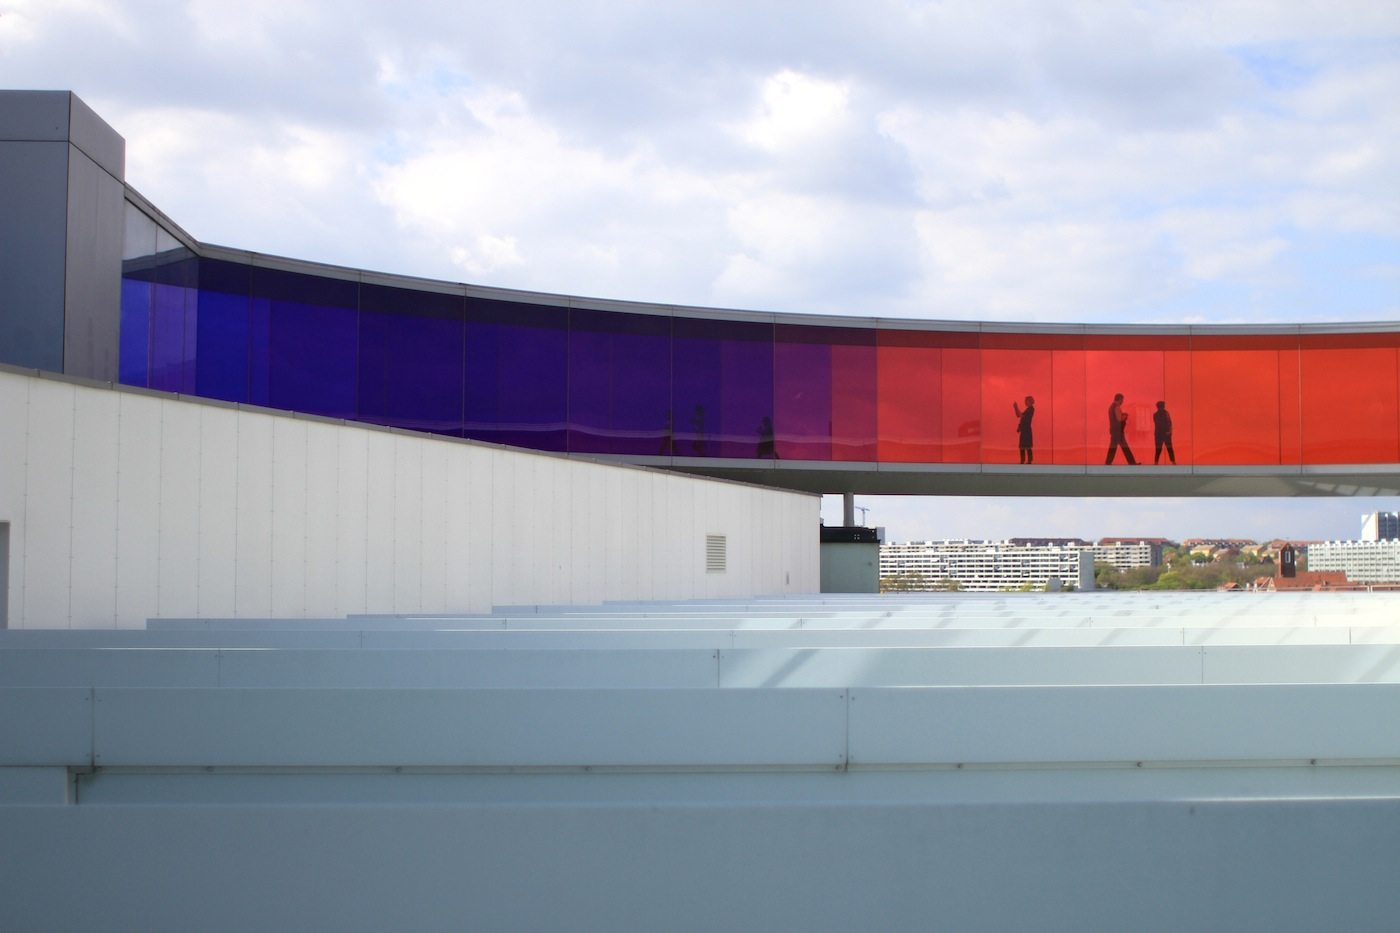 ARoS.  Die Your rainbow panorama-Installation von Olafur Eliasson ...